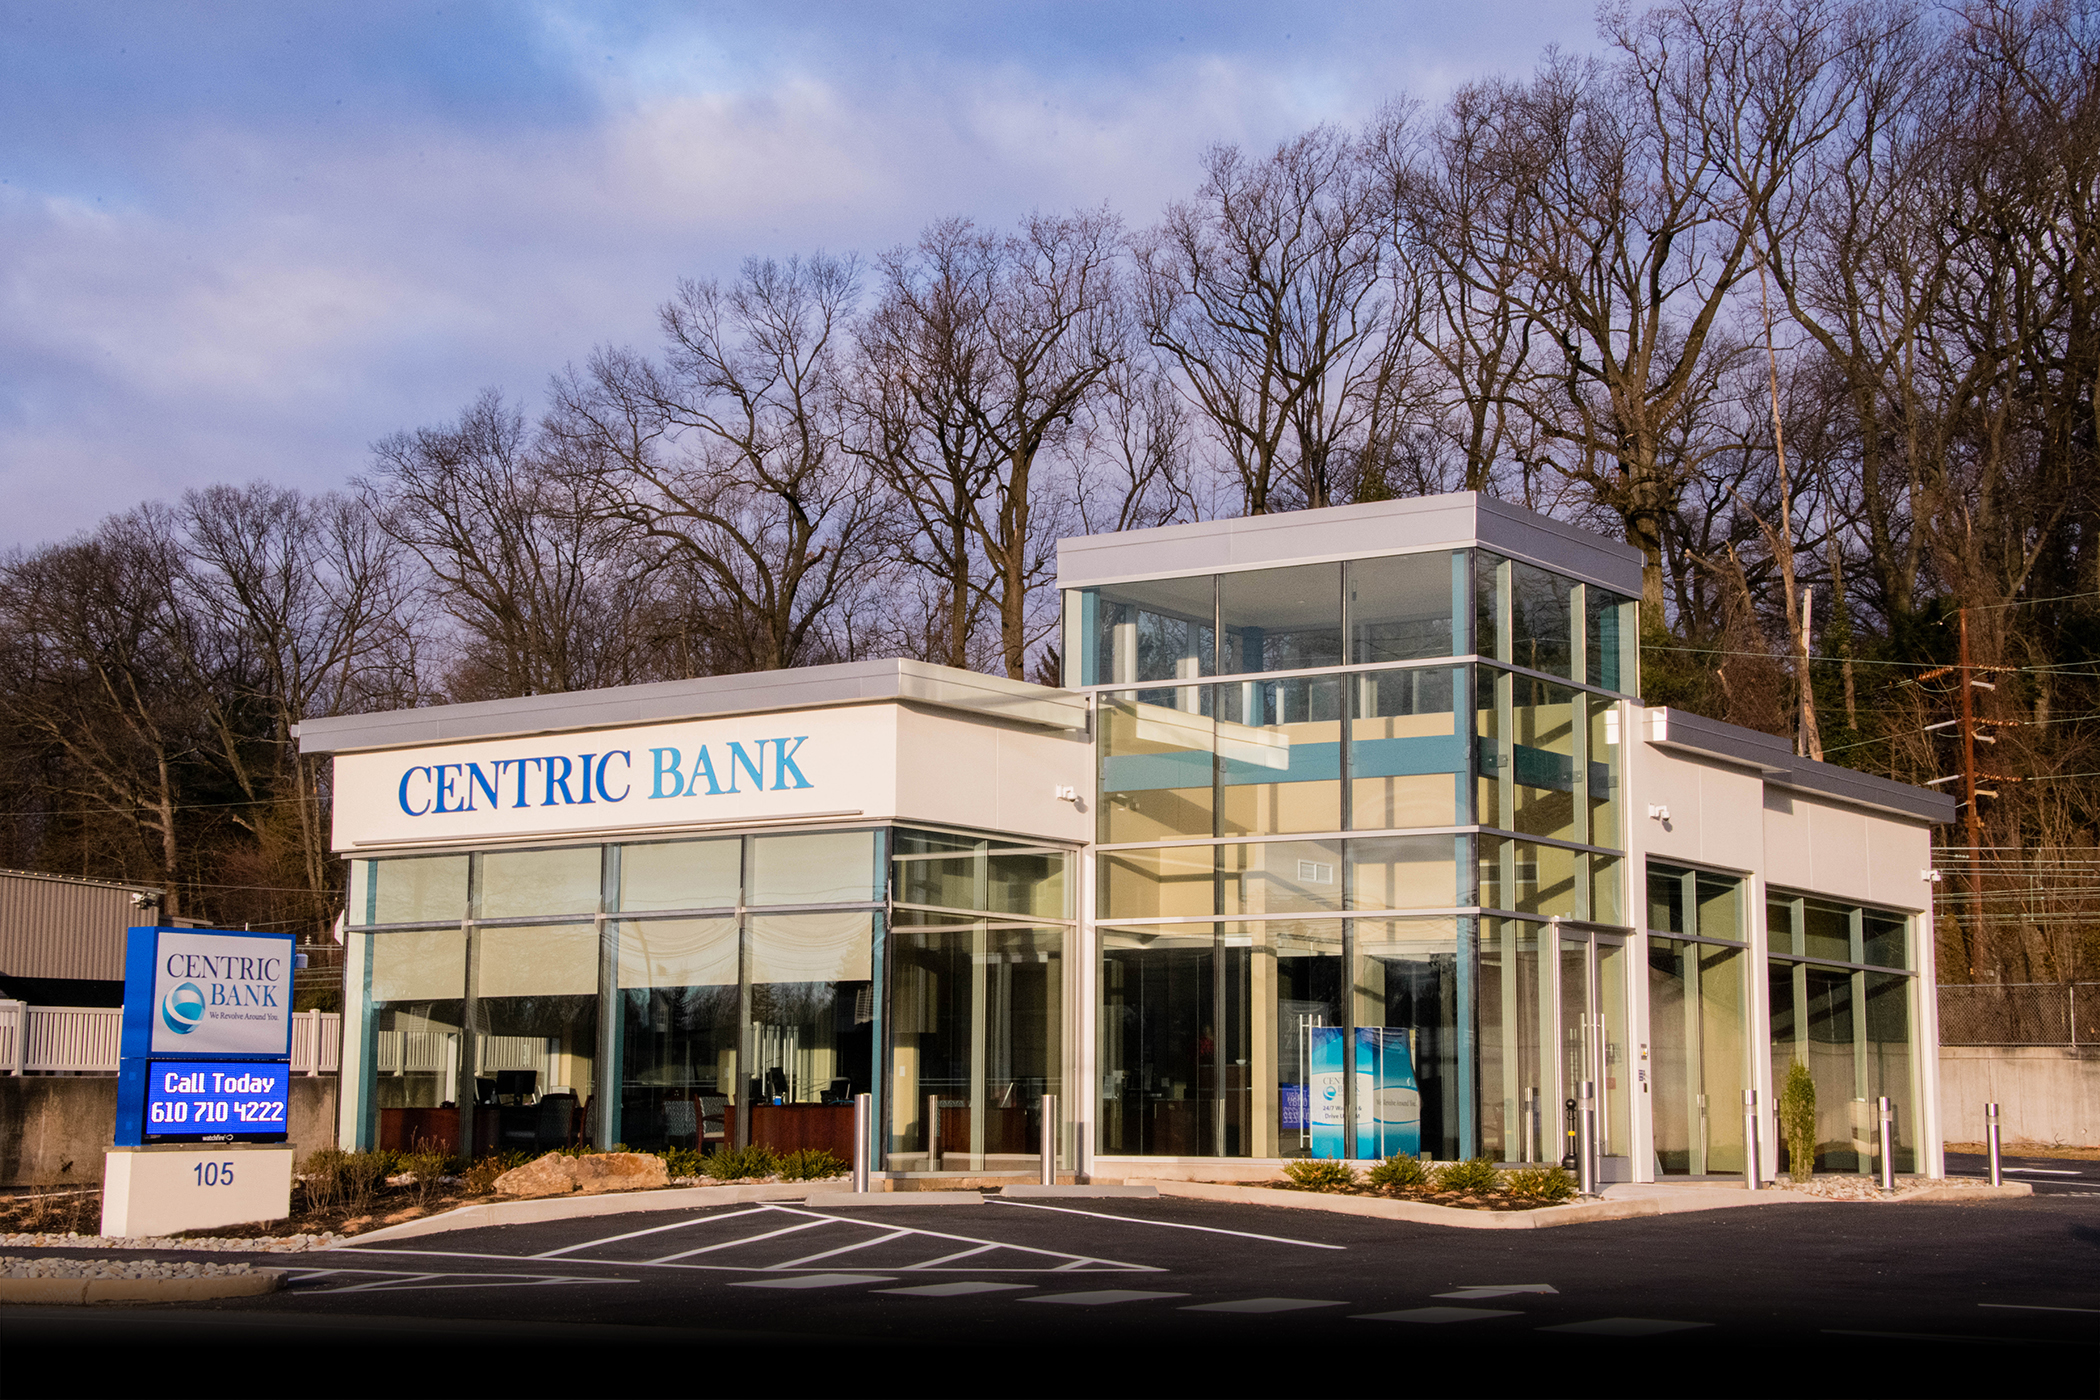 Centric Bank Welcomes Your SBA CARES Act Loan Applications